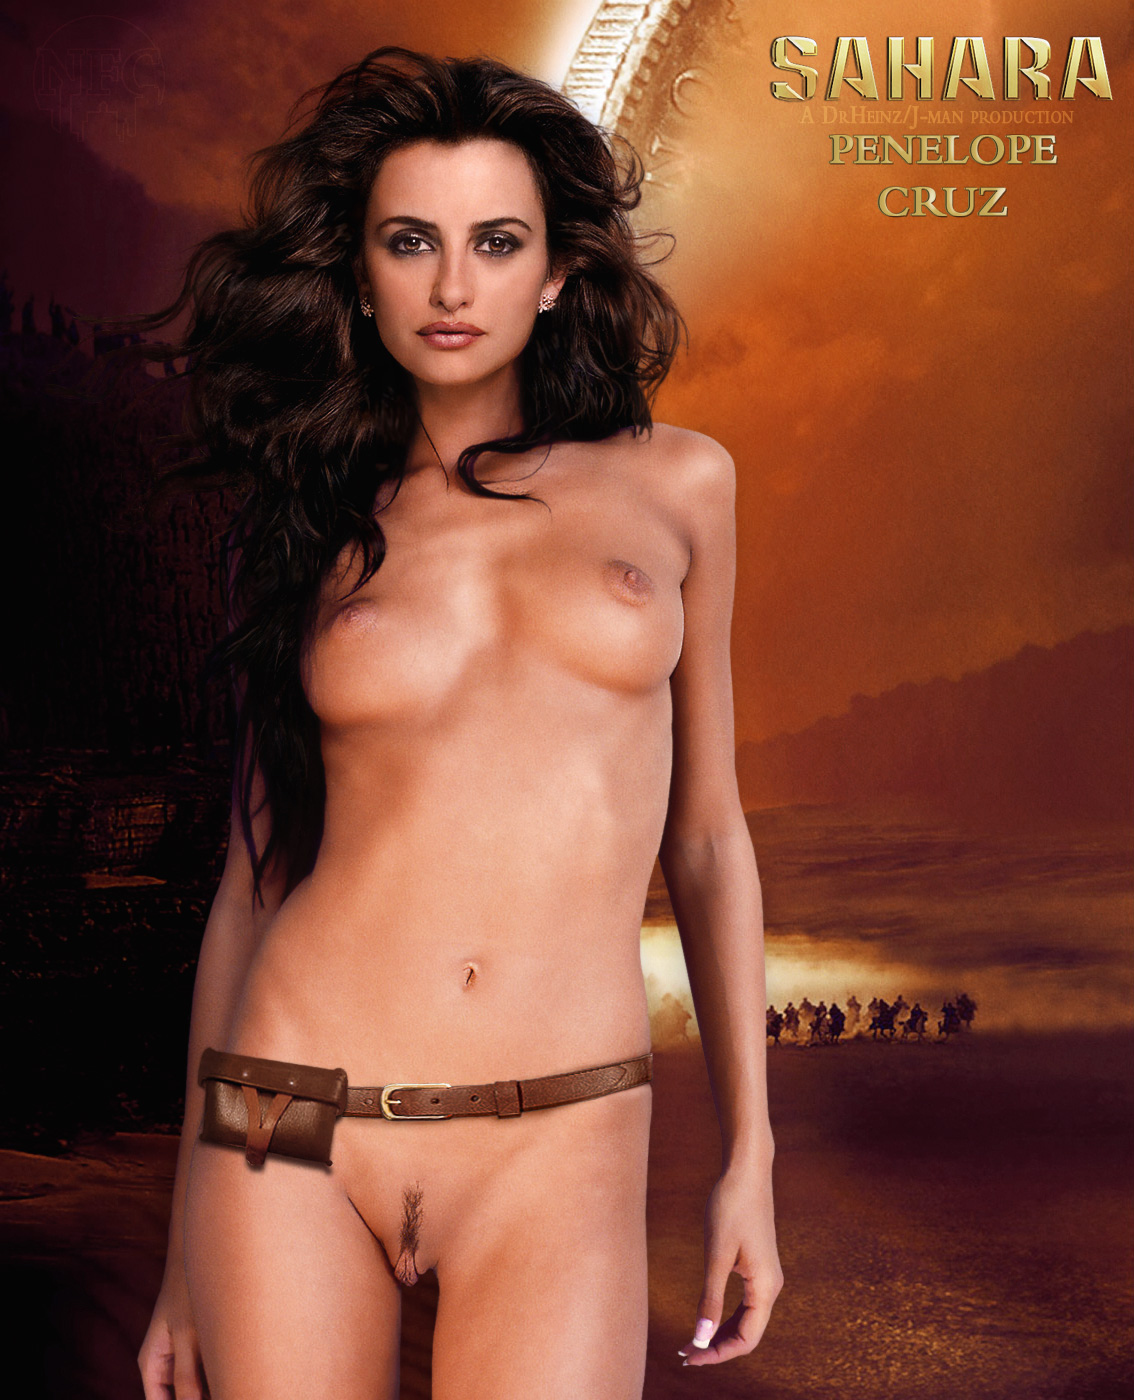 nude-videos-of-penelope-cruz-mature-man-woman-sex